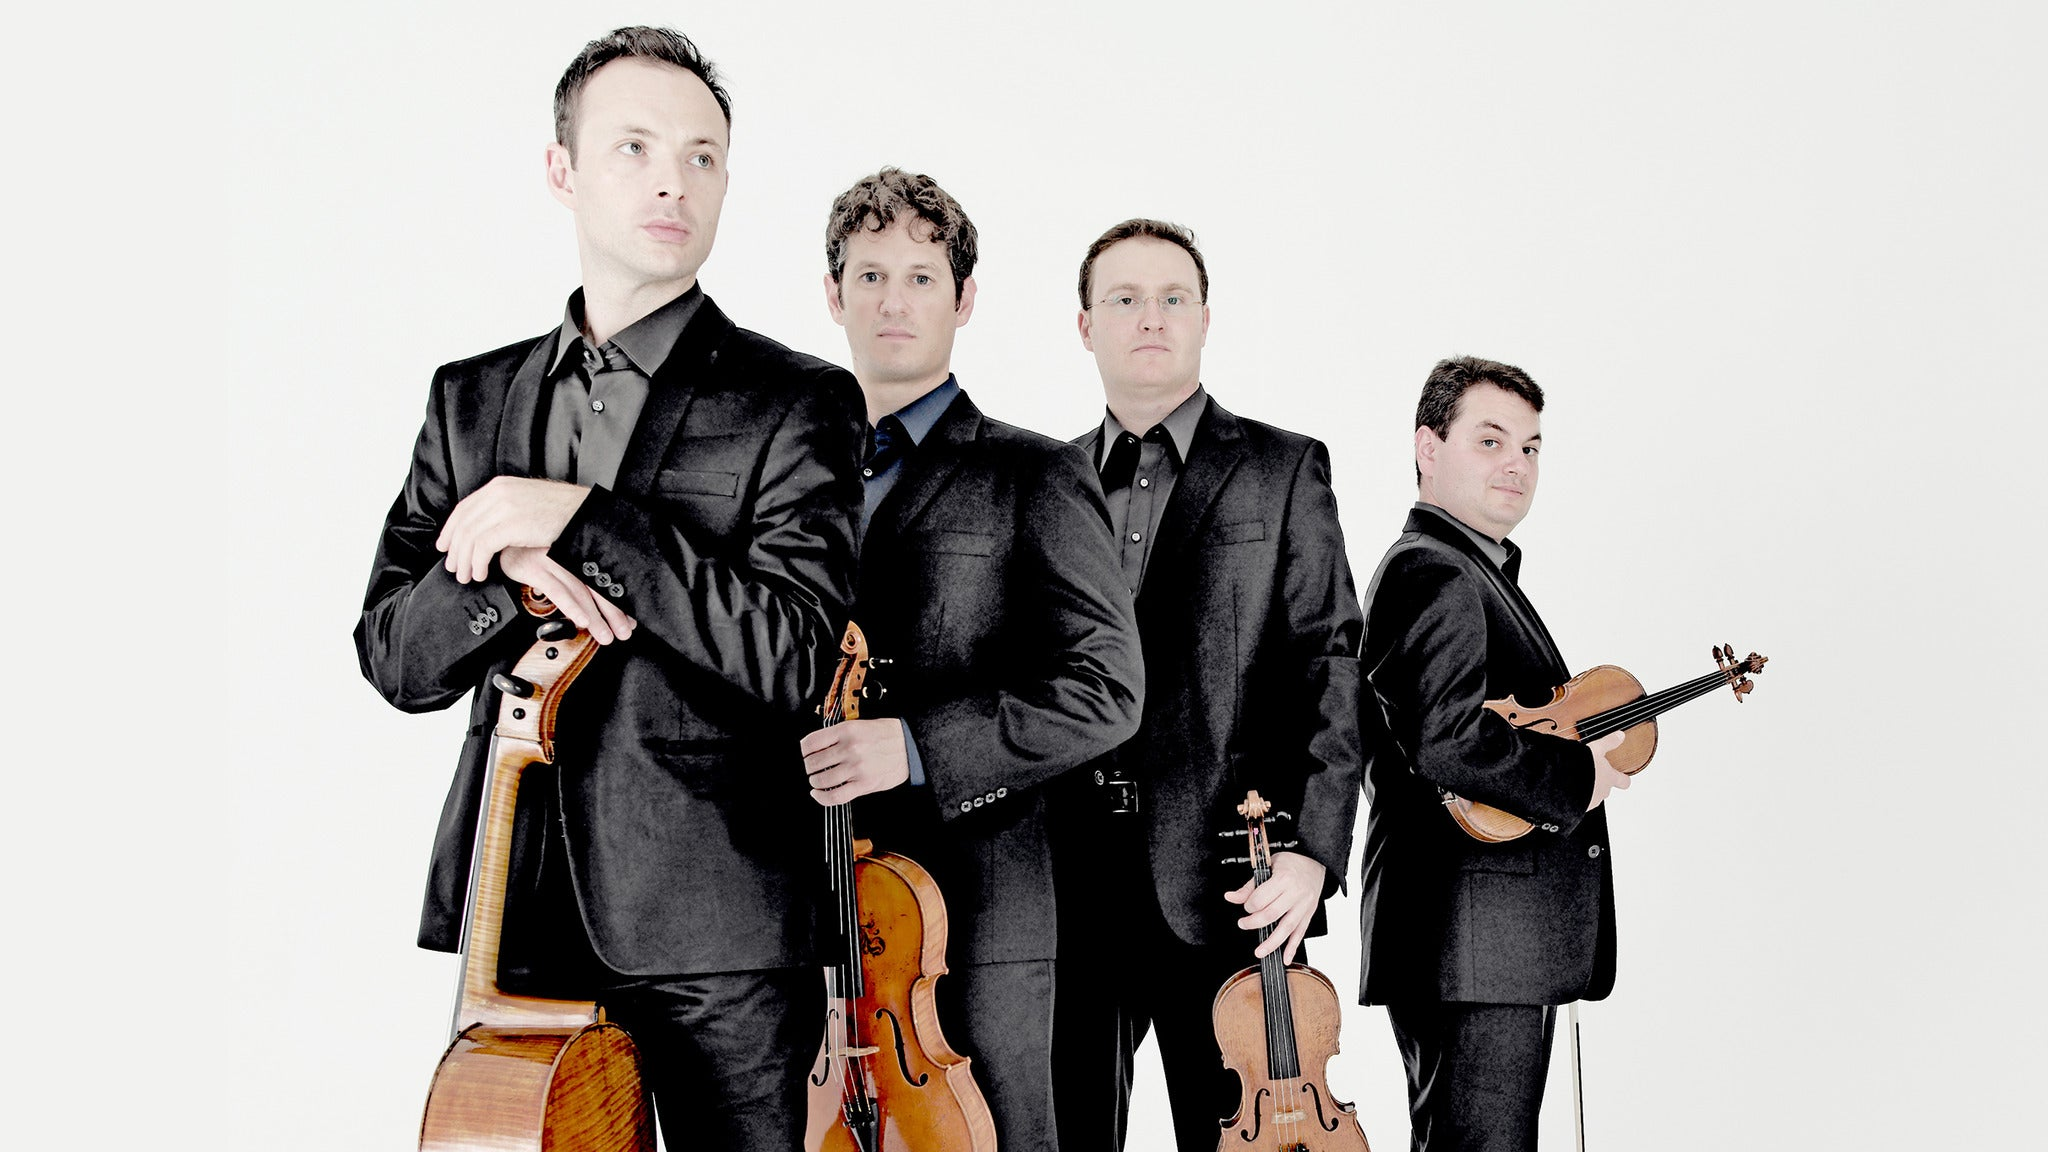 The Jerusalem Quartet, Violins of Hope